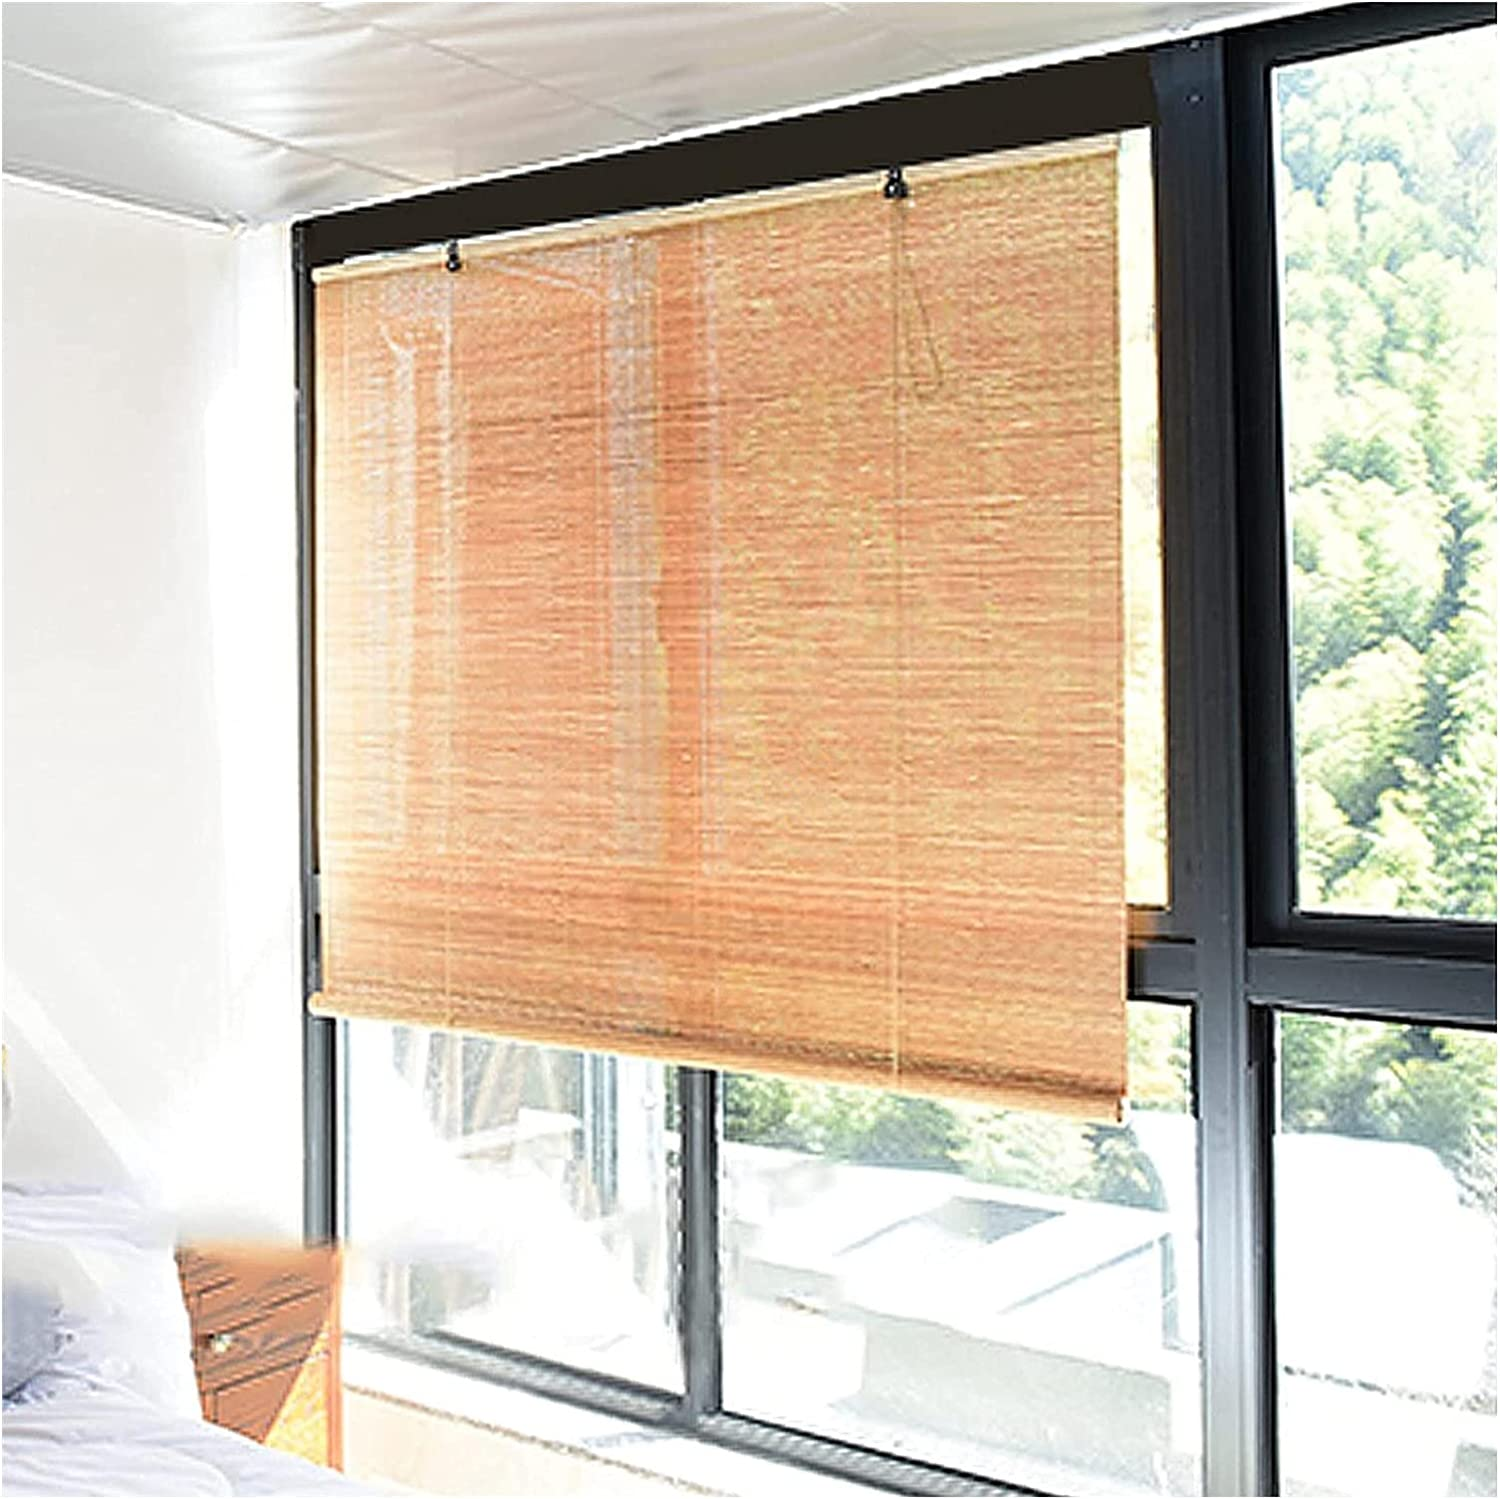 Free free shipping anywhere in the nation Bamboo Blinds for Windows Natural Home Roller Blind Breat